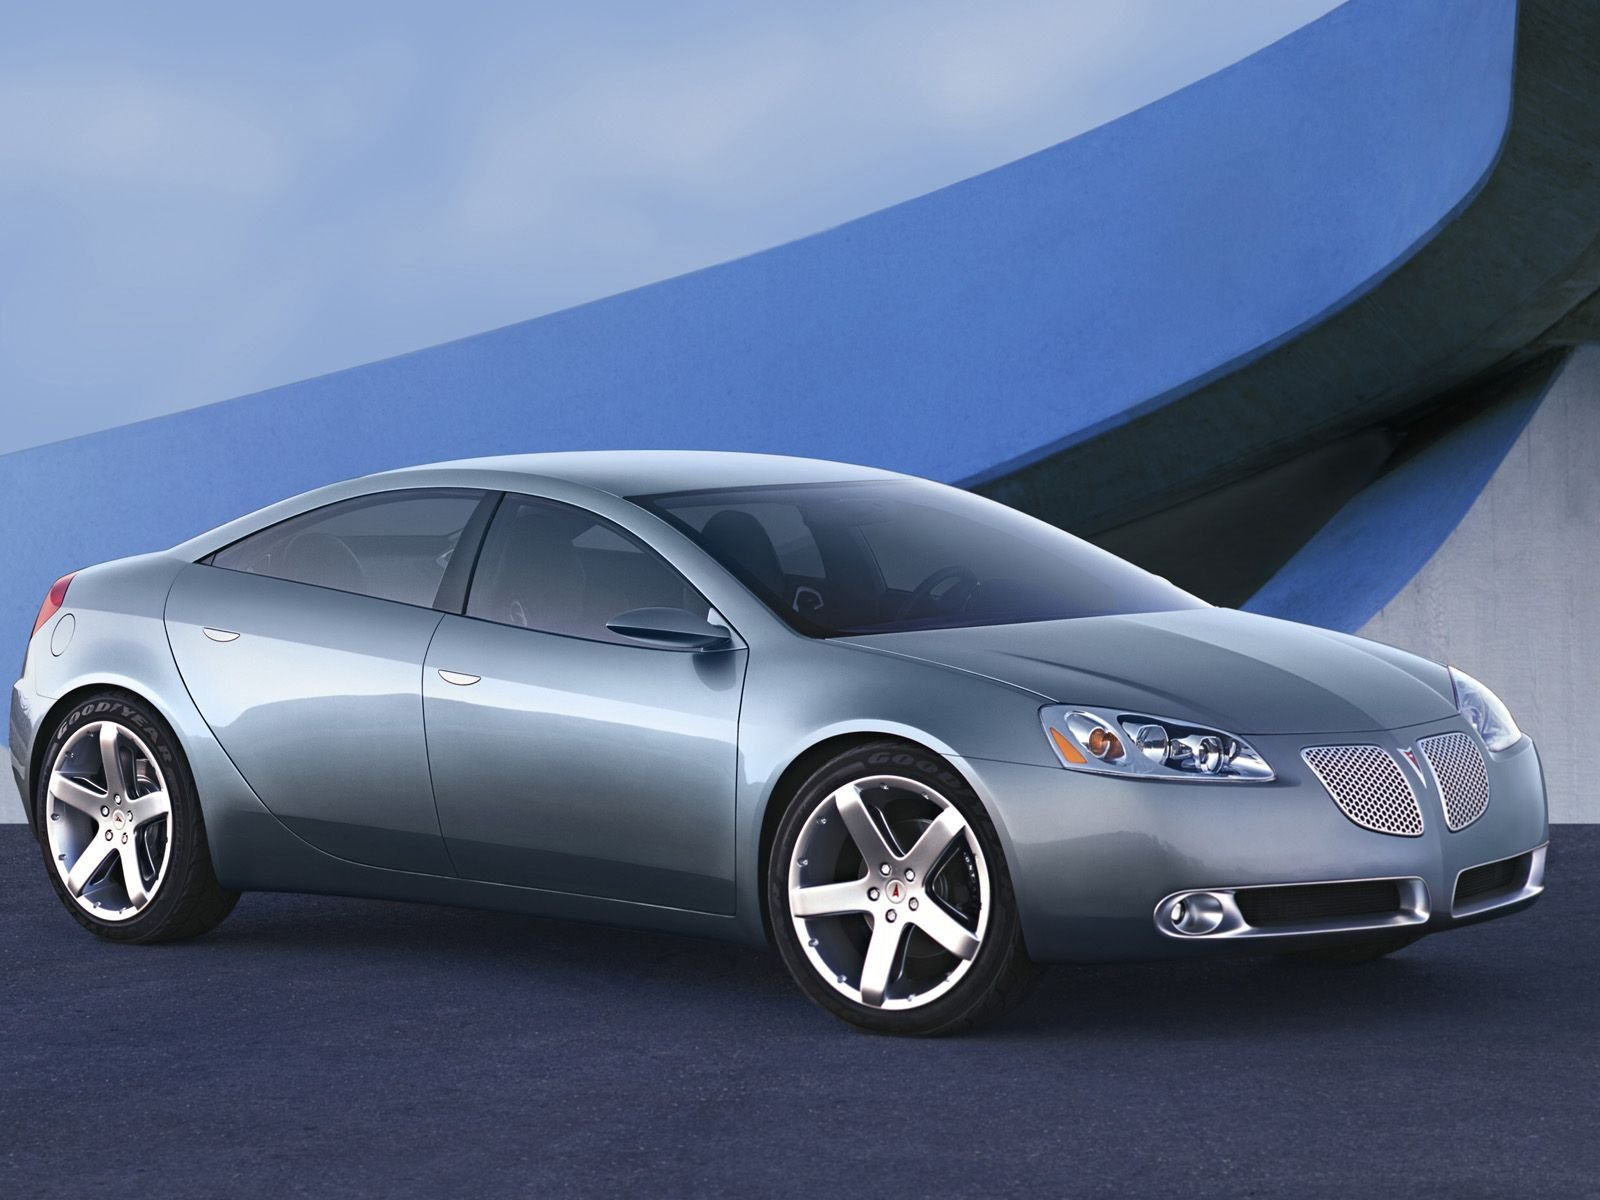 2007 pontiac g6 picture 35283 car review top speed. Black Bedroom Furniture Sets. Home Design Ideas